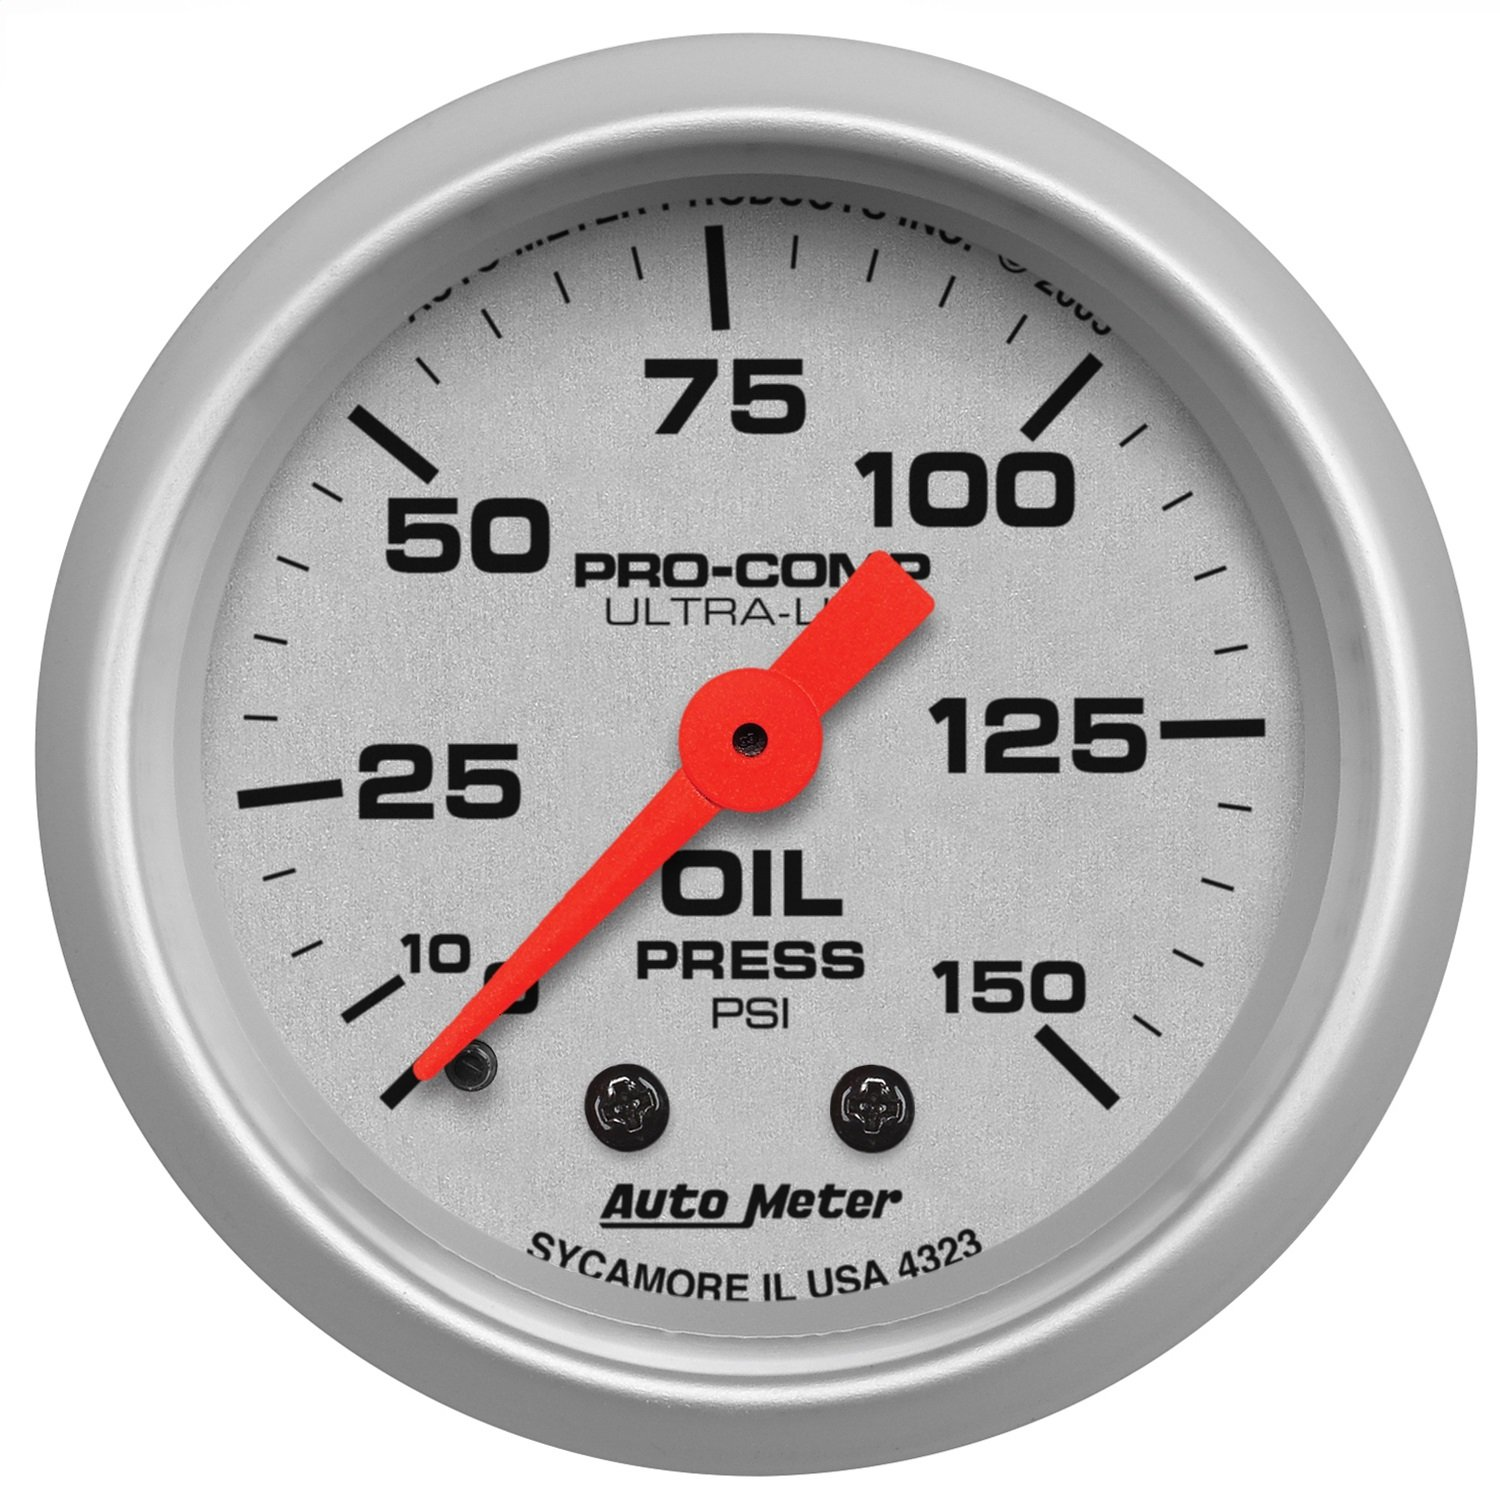 Auto Meter 4323 Ultra-Lite 2-1/16' 0-150 PSI Mechanical Oil Pressure Gauge